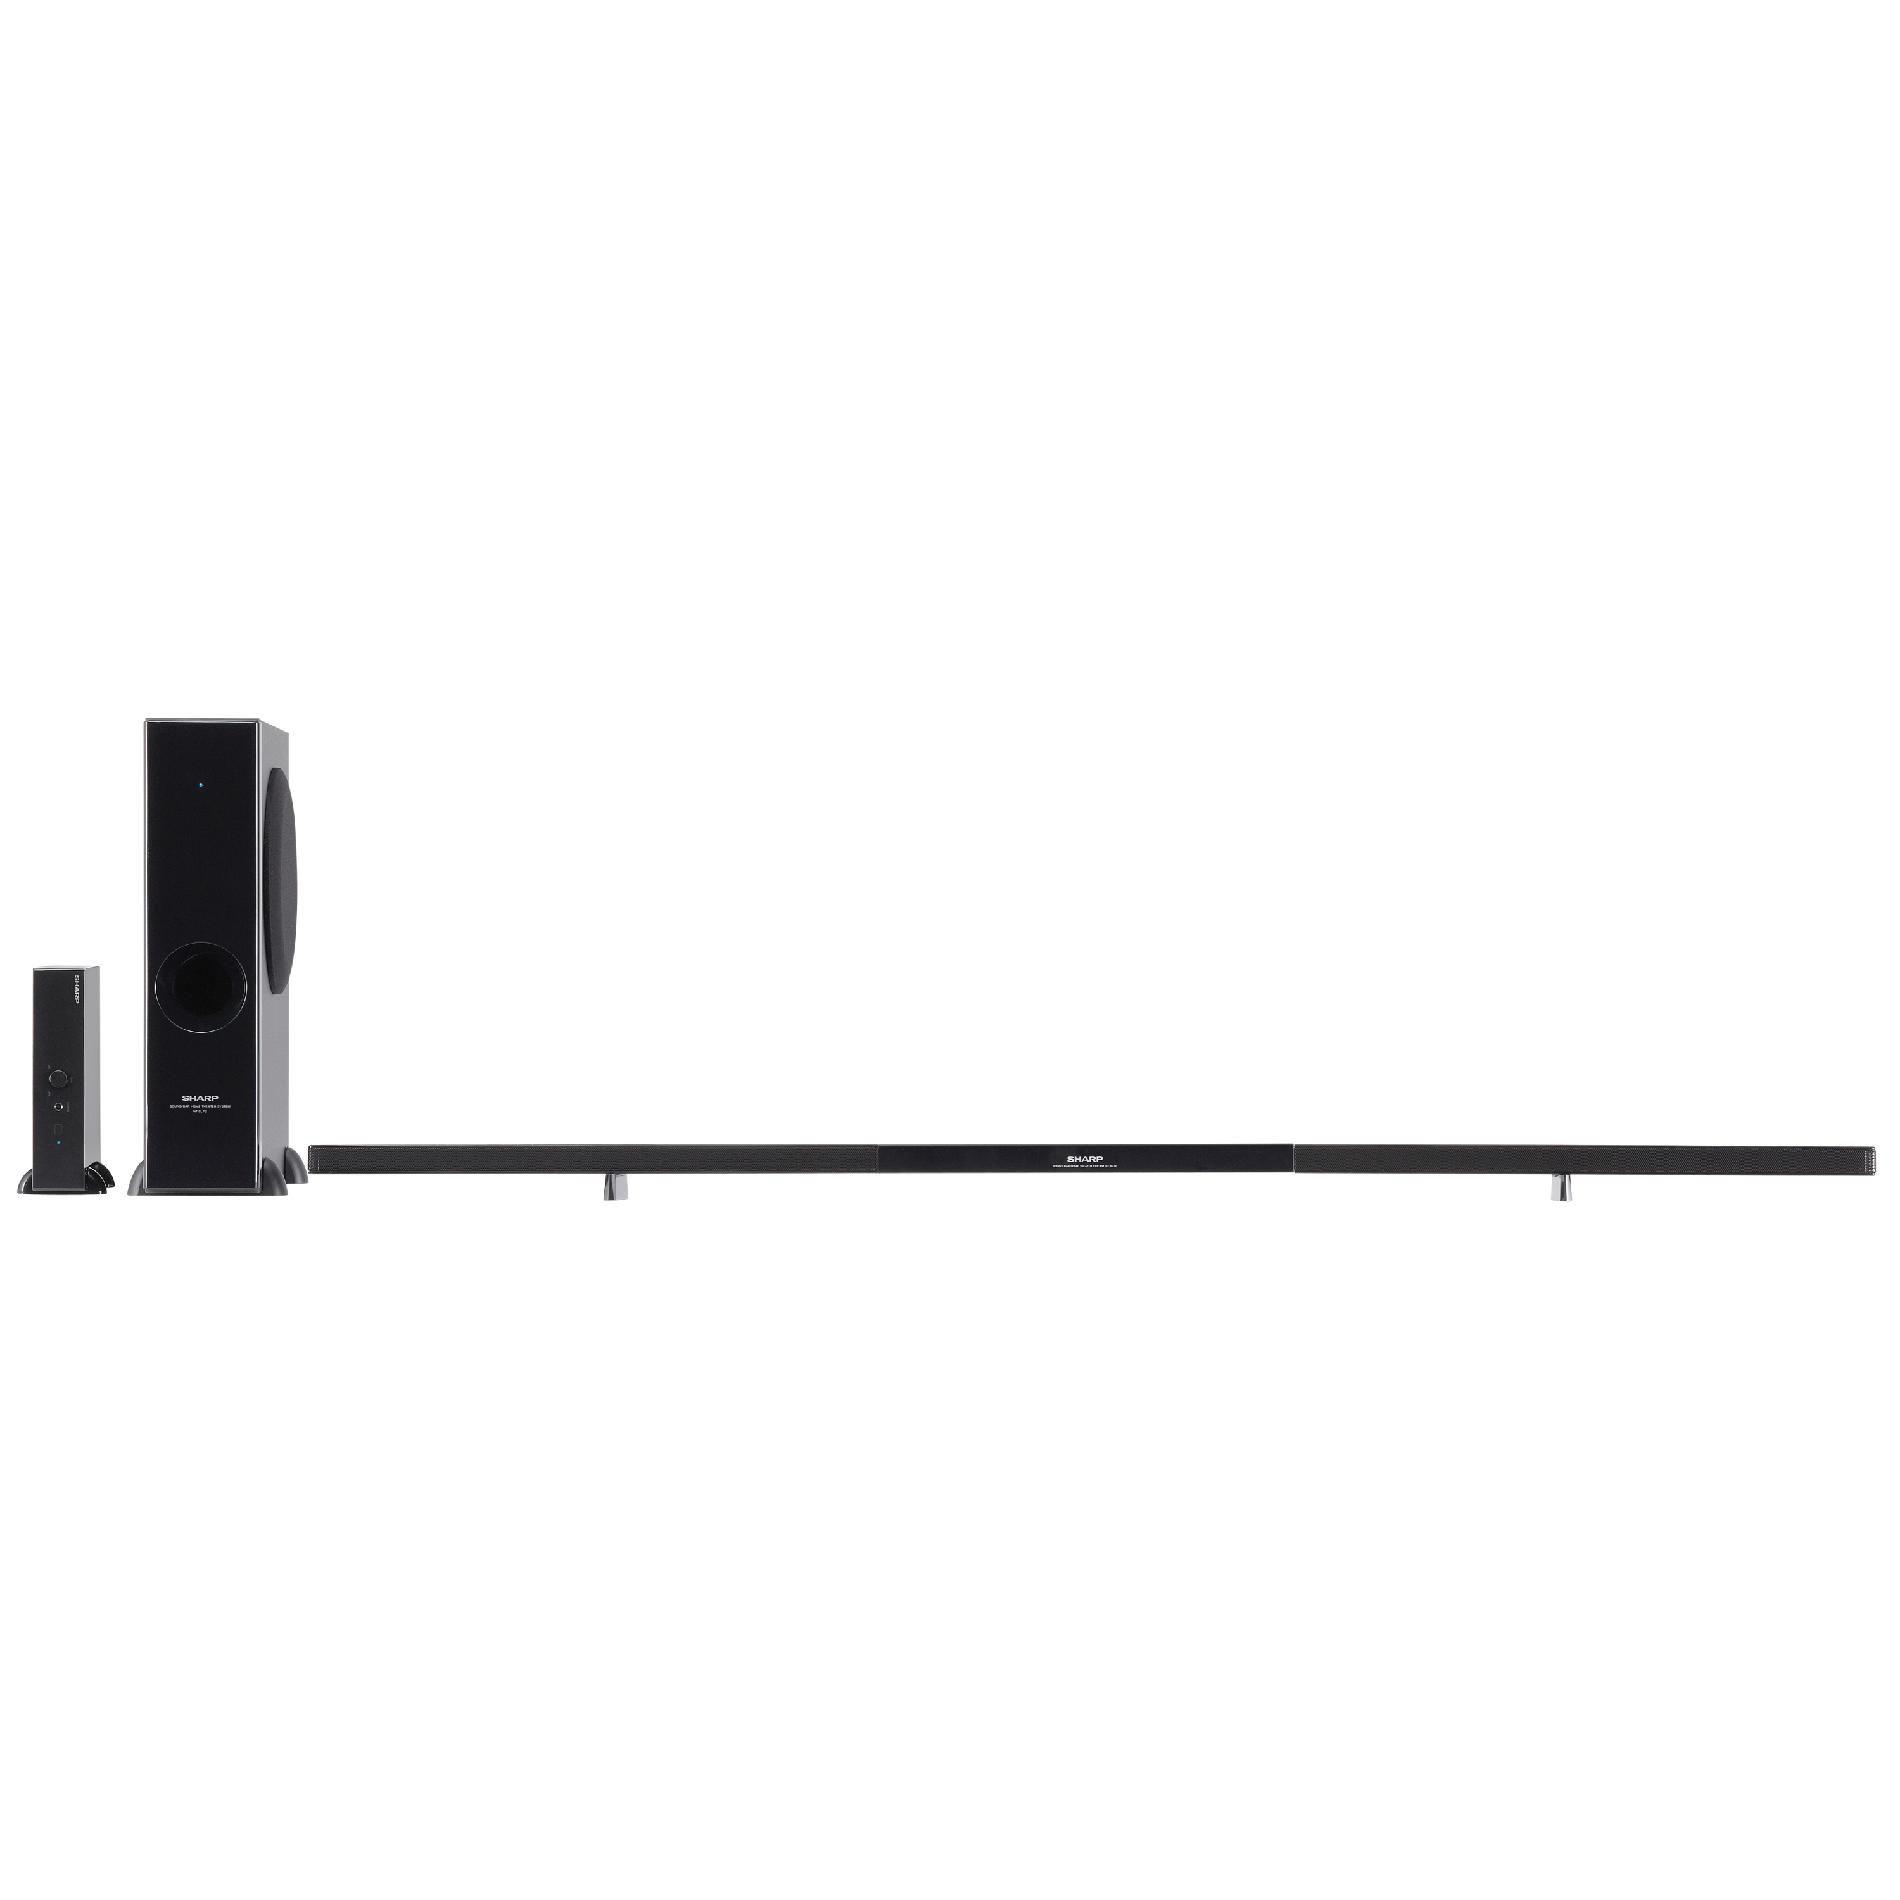 Sharp 2.1 Channel Sound Bar Home Theater System HT-SL72